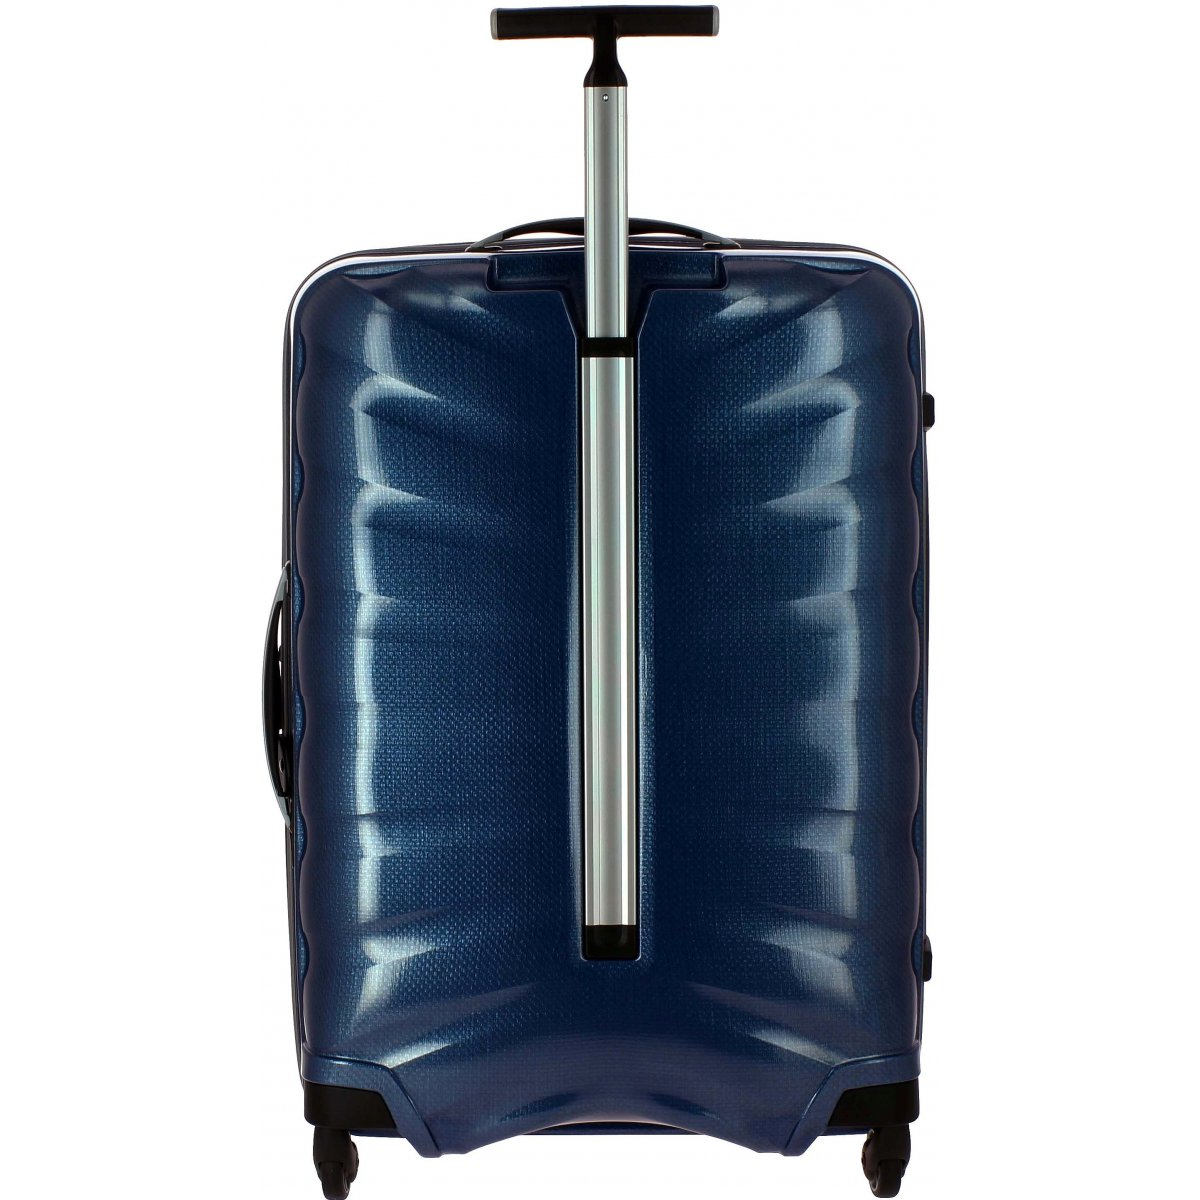 valise samsonite firelite spinner 81 cm firelite86 couleur principale dark blue solde. Black Bedroom Furniture Sets. Home Design Ideas